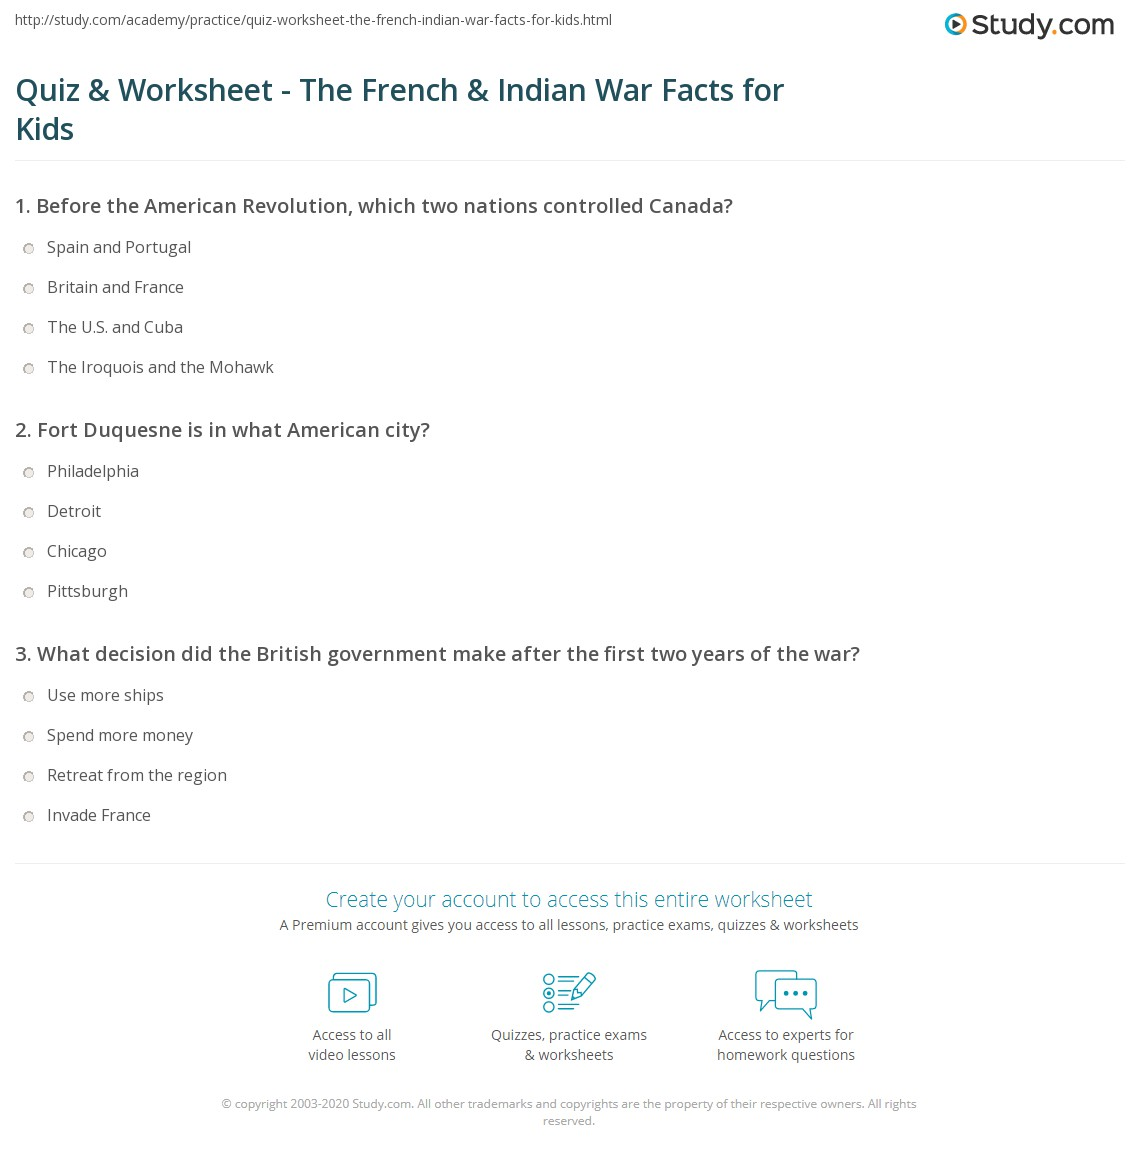 quiz worksheet the french indian war facts for kids. Black Bedroom Furniture Sets. Home Design Ideas